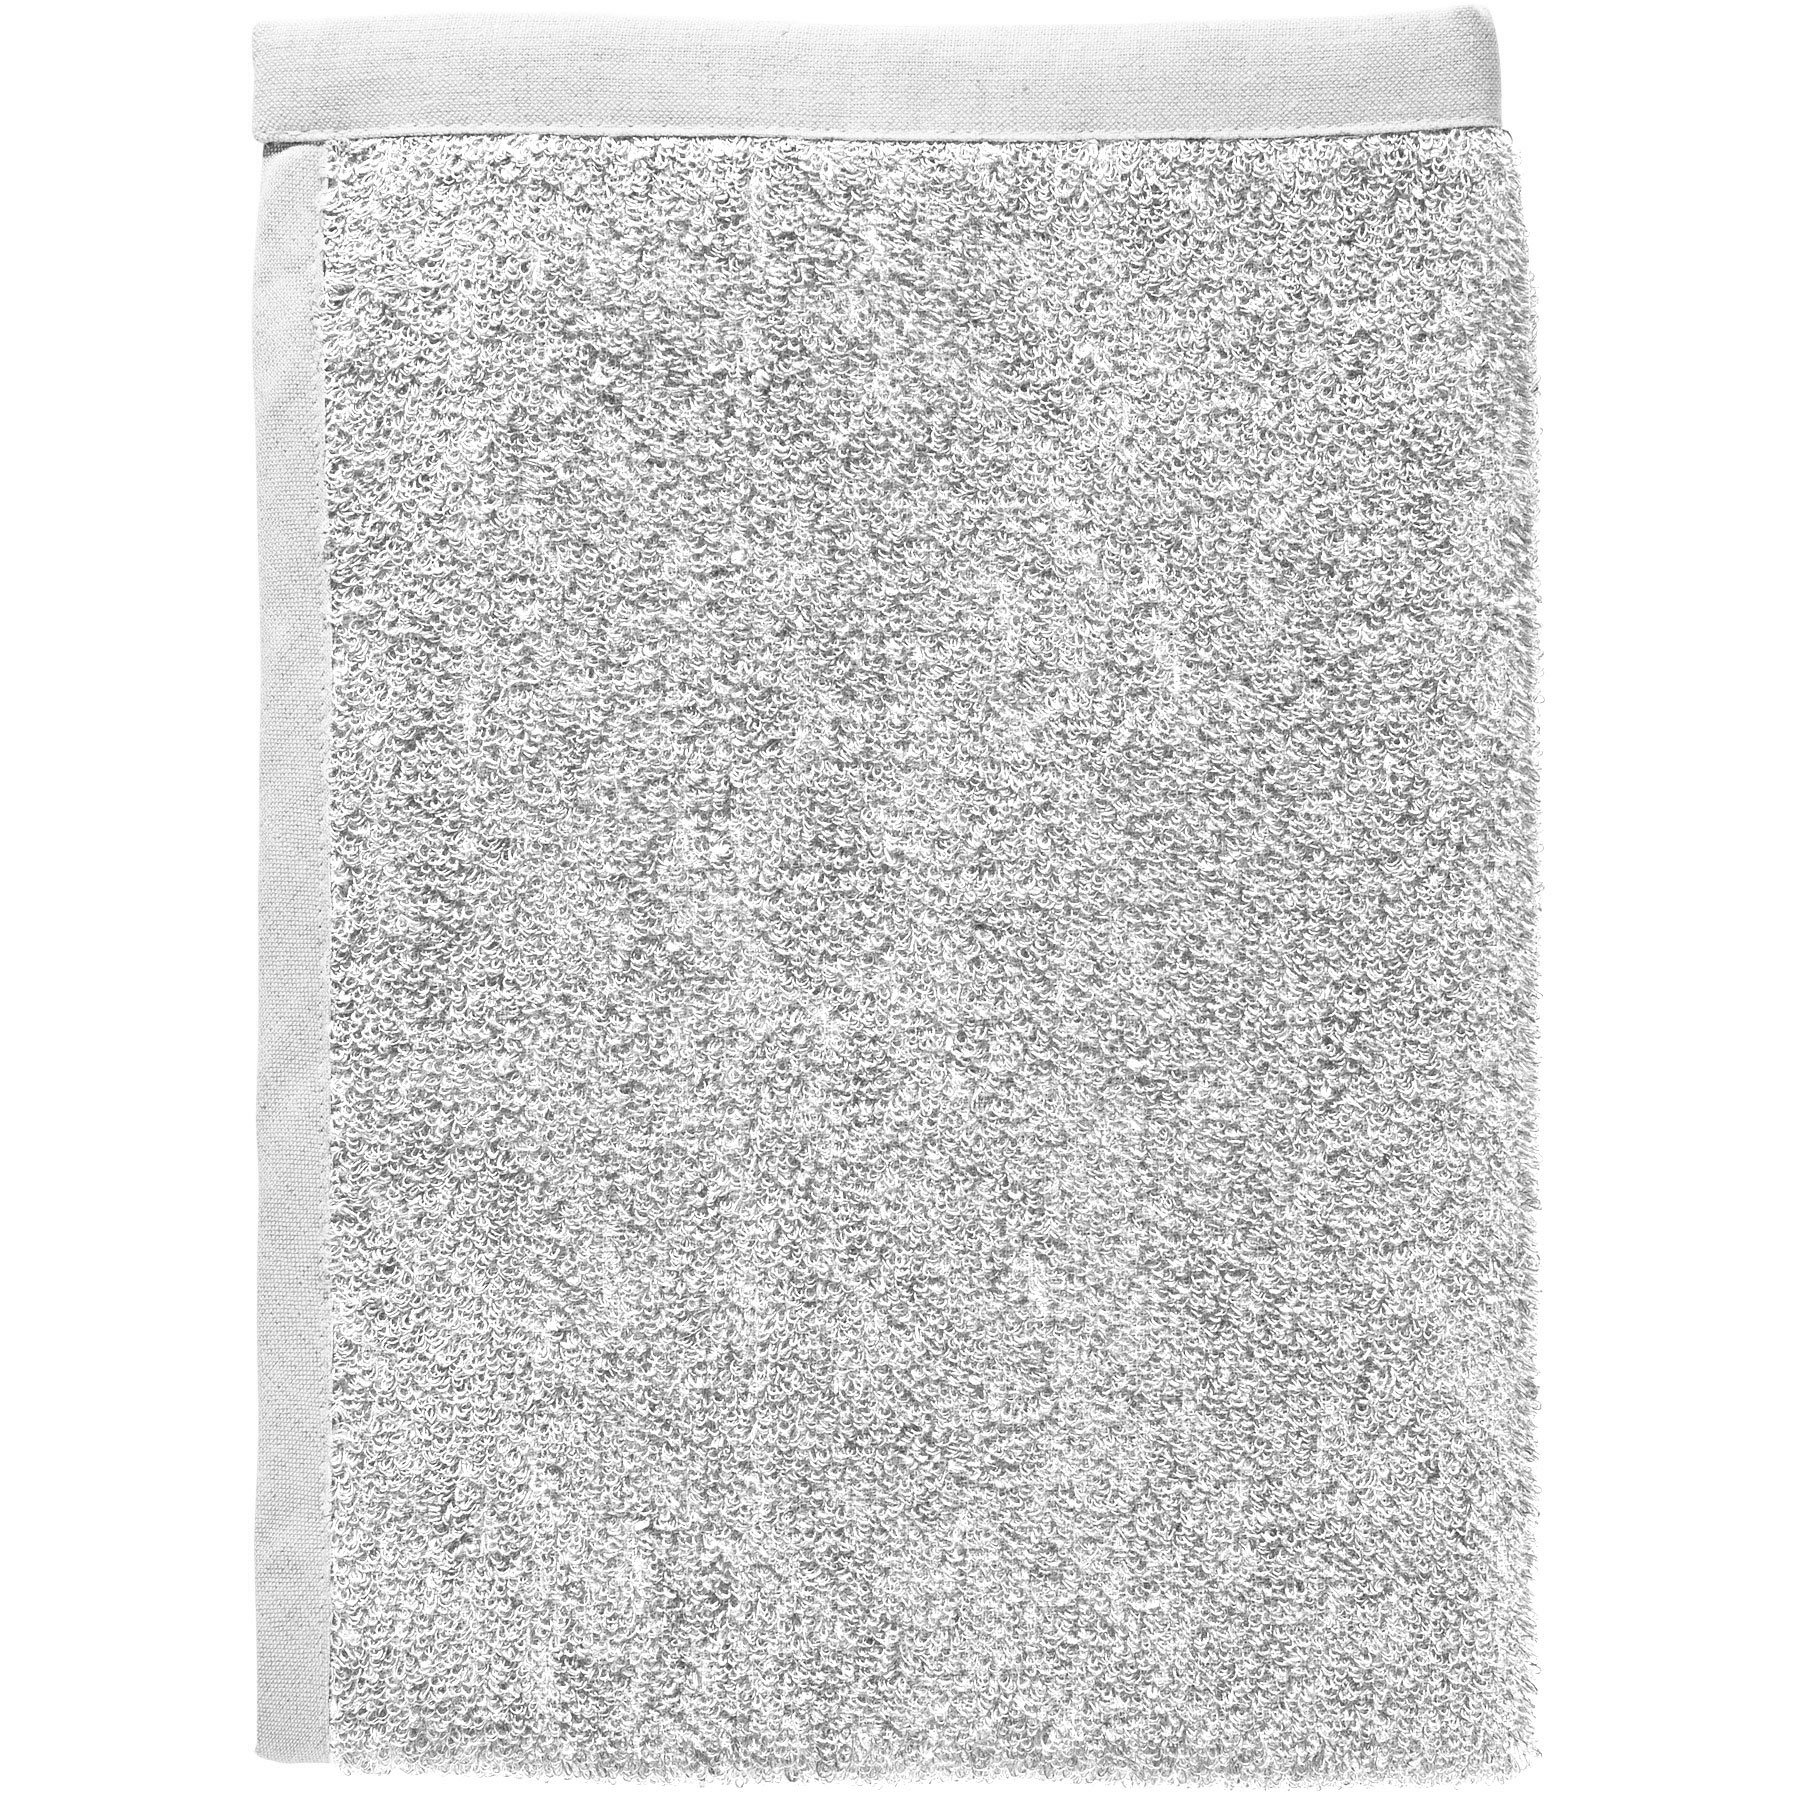 BATH TOWEL TERRY light gray